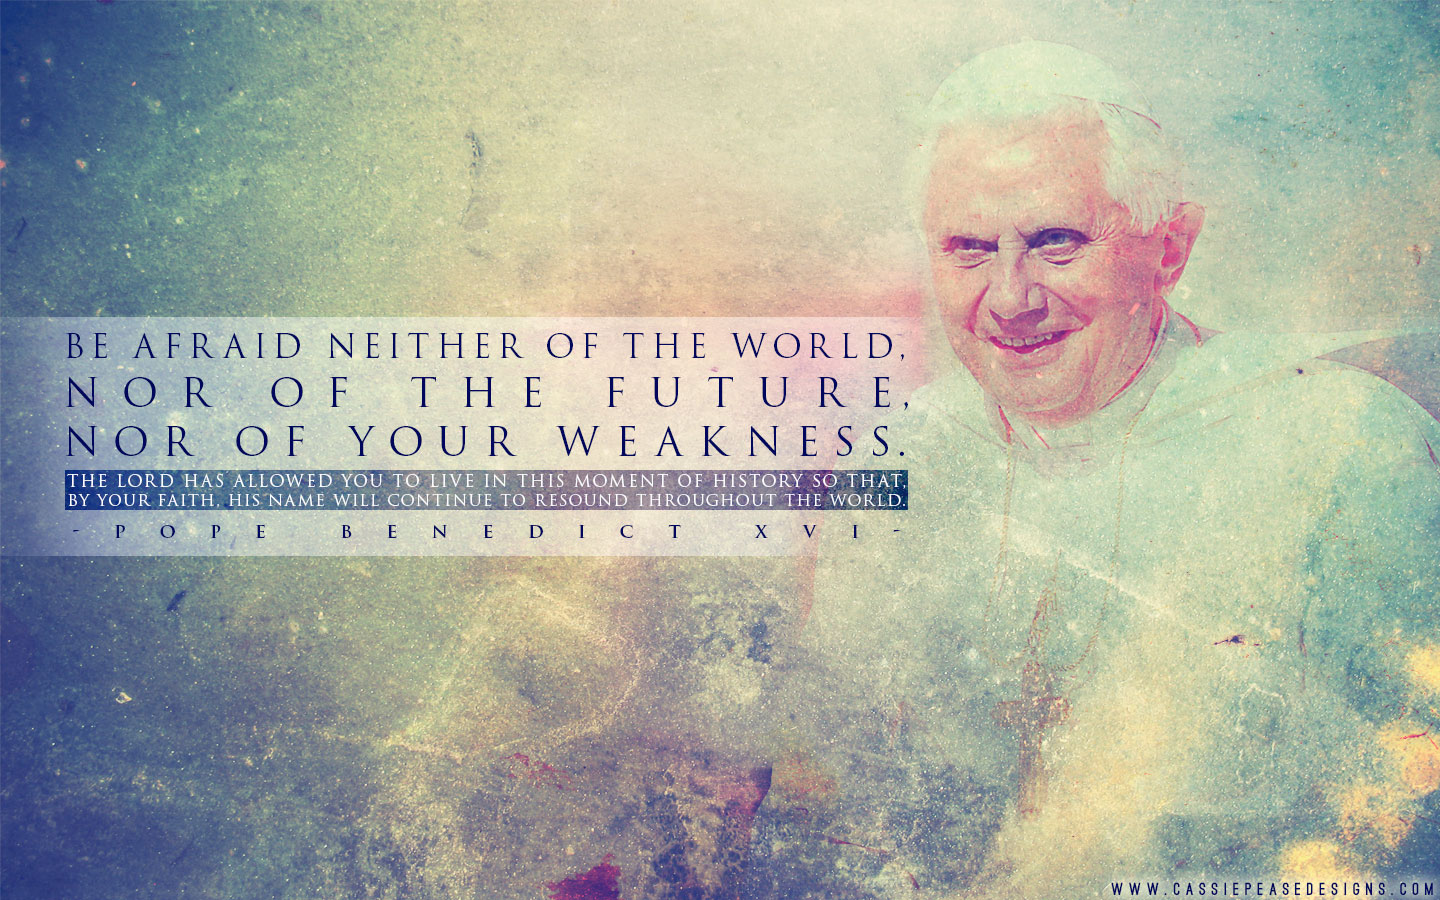 Motivational Quotes Computer Backgrounds Wallpapers Pope Benedict Xvi Weakness Desktop Wallpaper Cassie